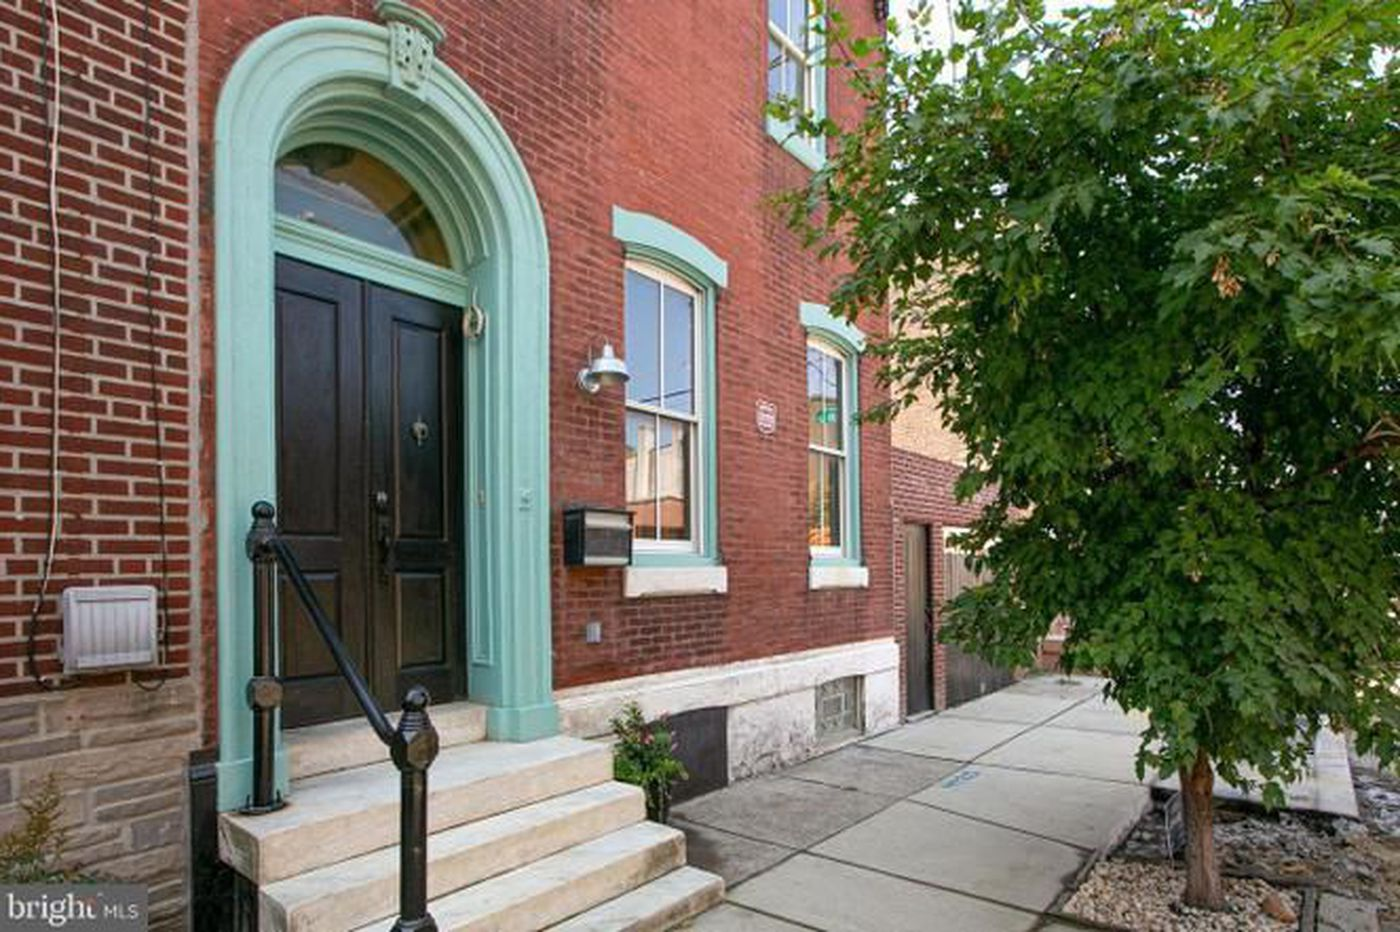 On the market: Three-story Georgian home in East Kensington for $550,000